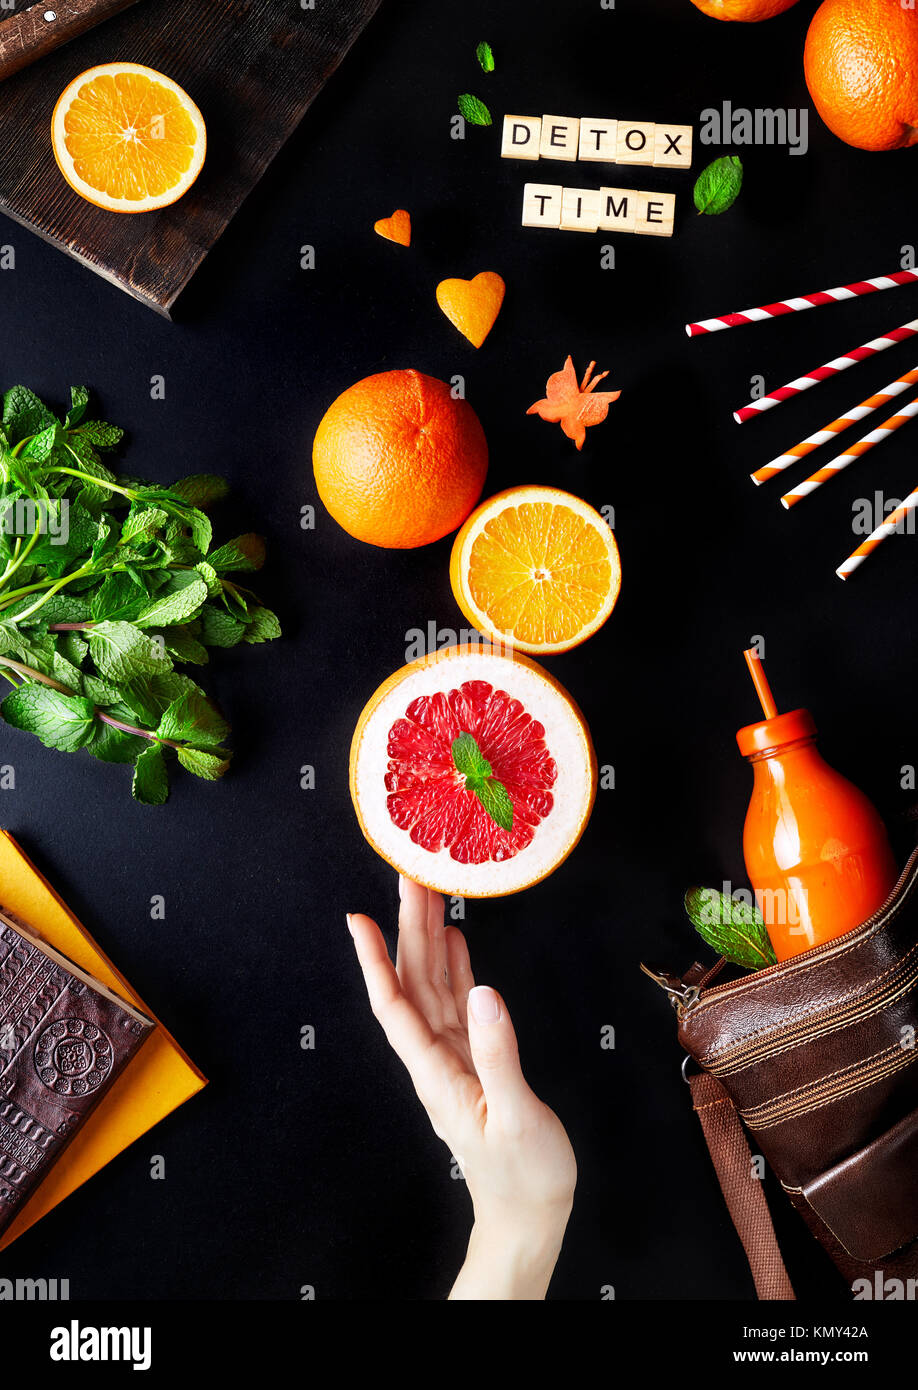 Fresh detox juice from citrus on black background flay lay - Stock Image